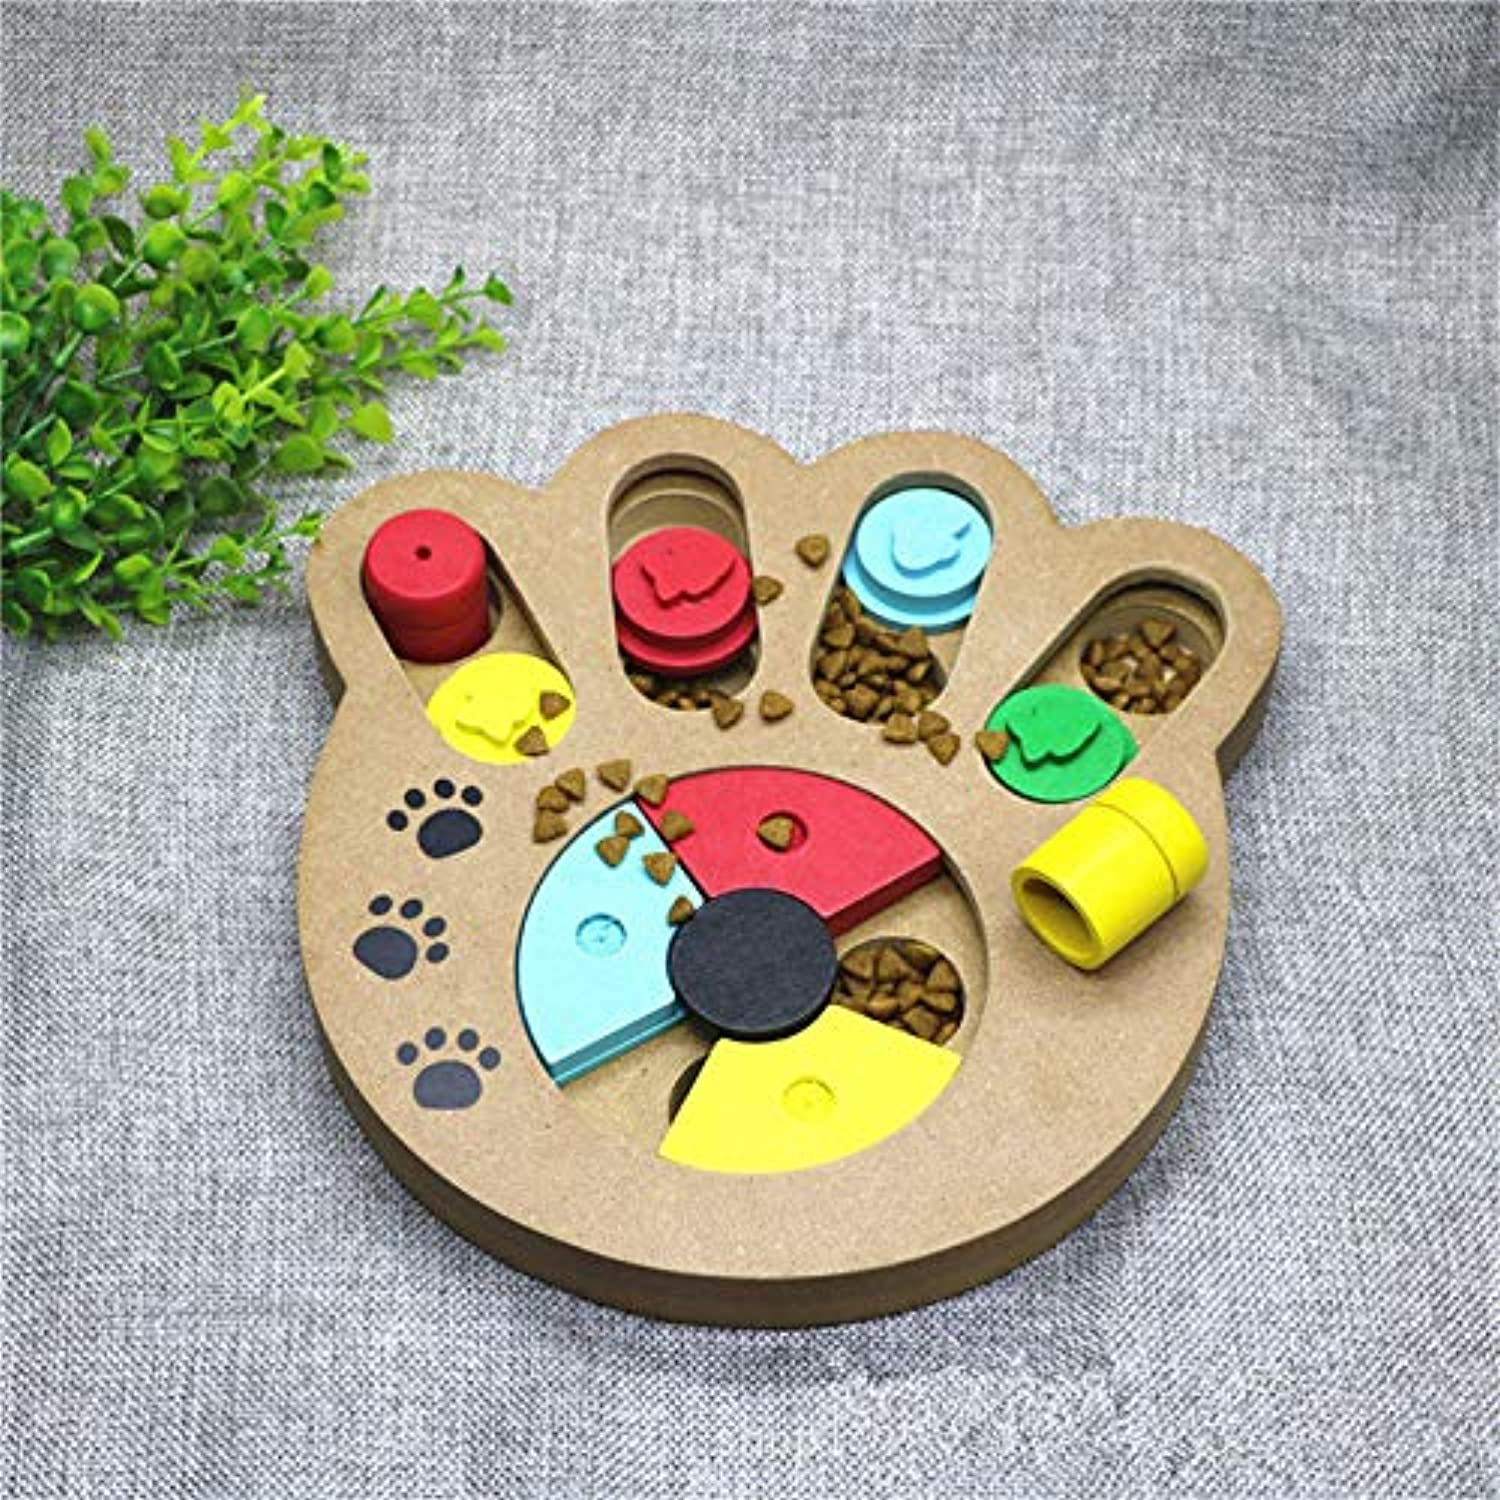 Fashion Pet Feeders Wooden Slow Eating and Anti Choking Feeding Device Bowl for Small and Medium Dog Pet Supplies,Bonetype